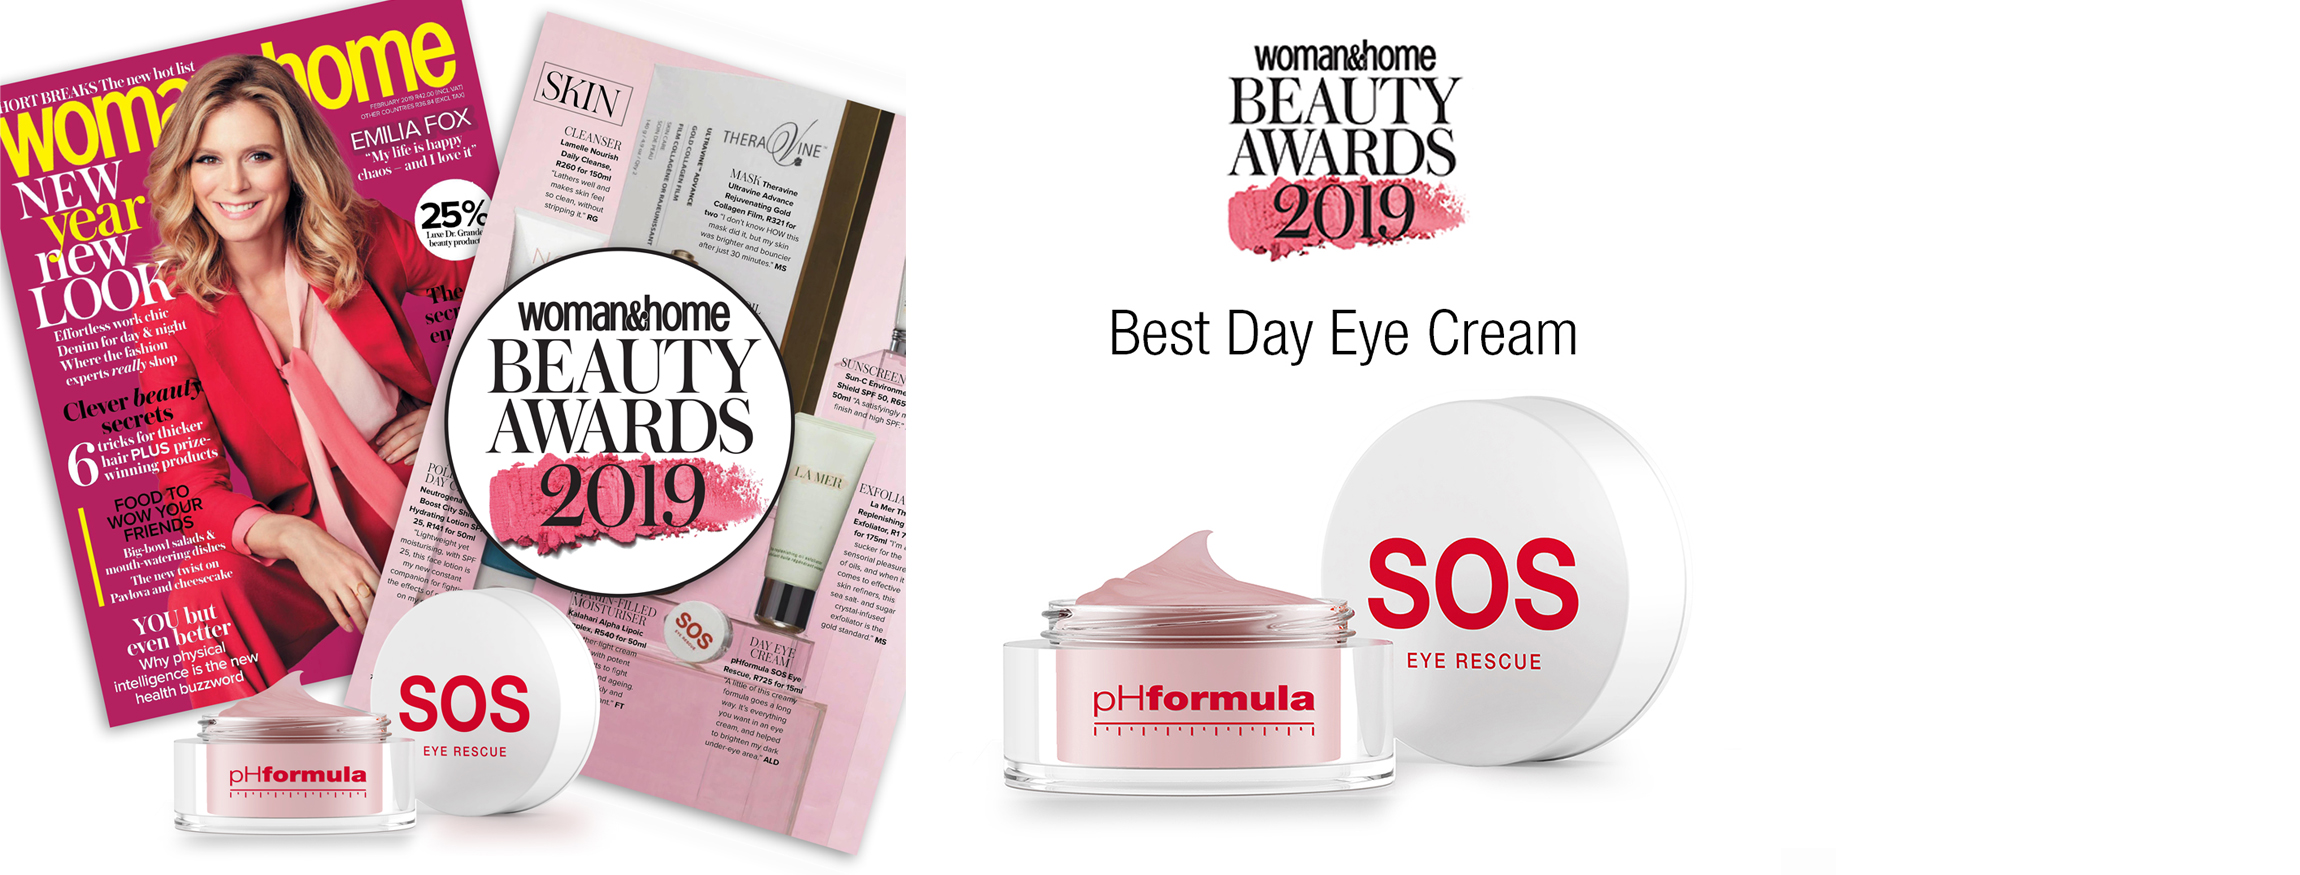 SOS eye rescue awarded Best Day Cream Beauty Award 2019